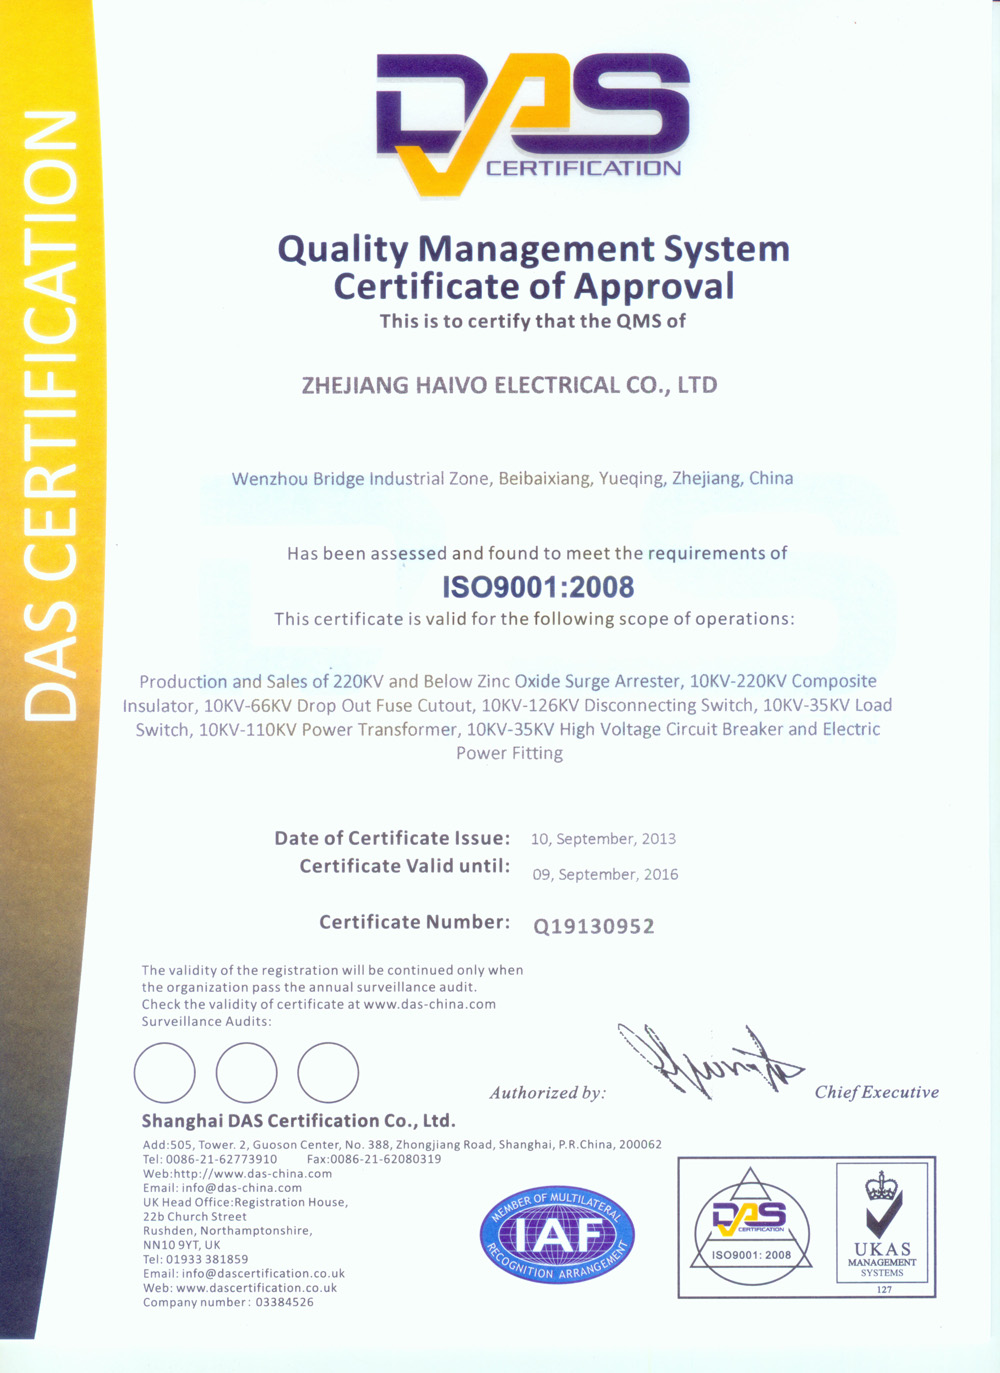 Quality Management System Certificate of Approval ISO9001:2008